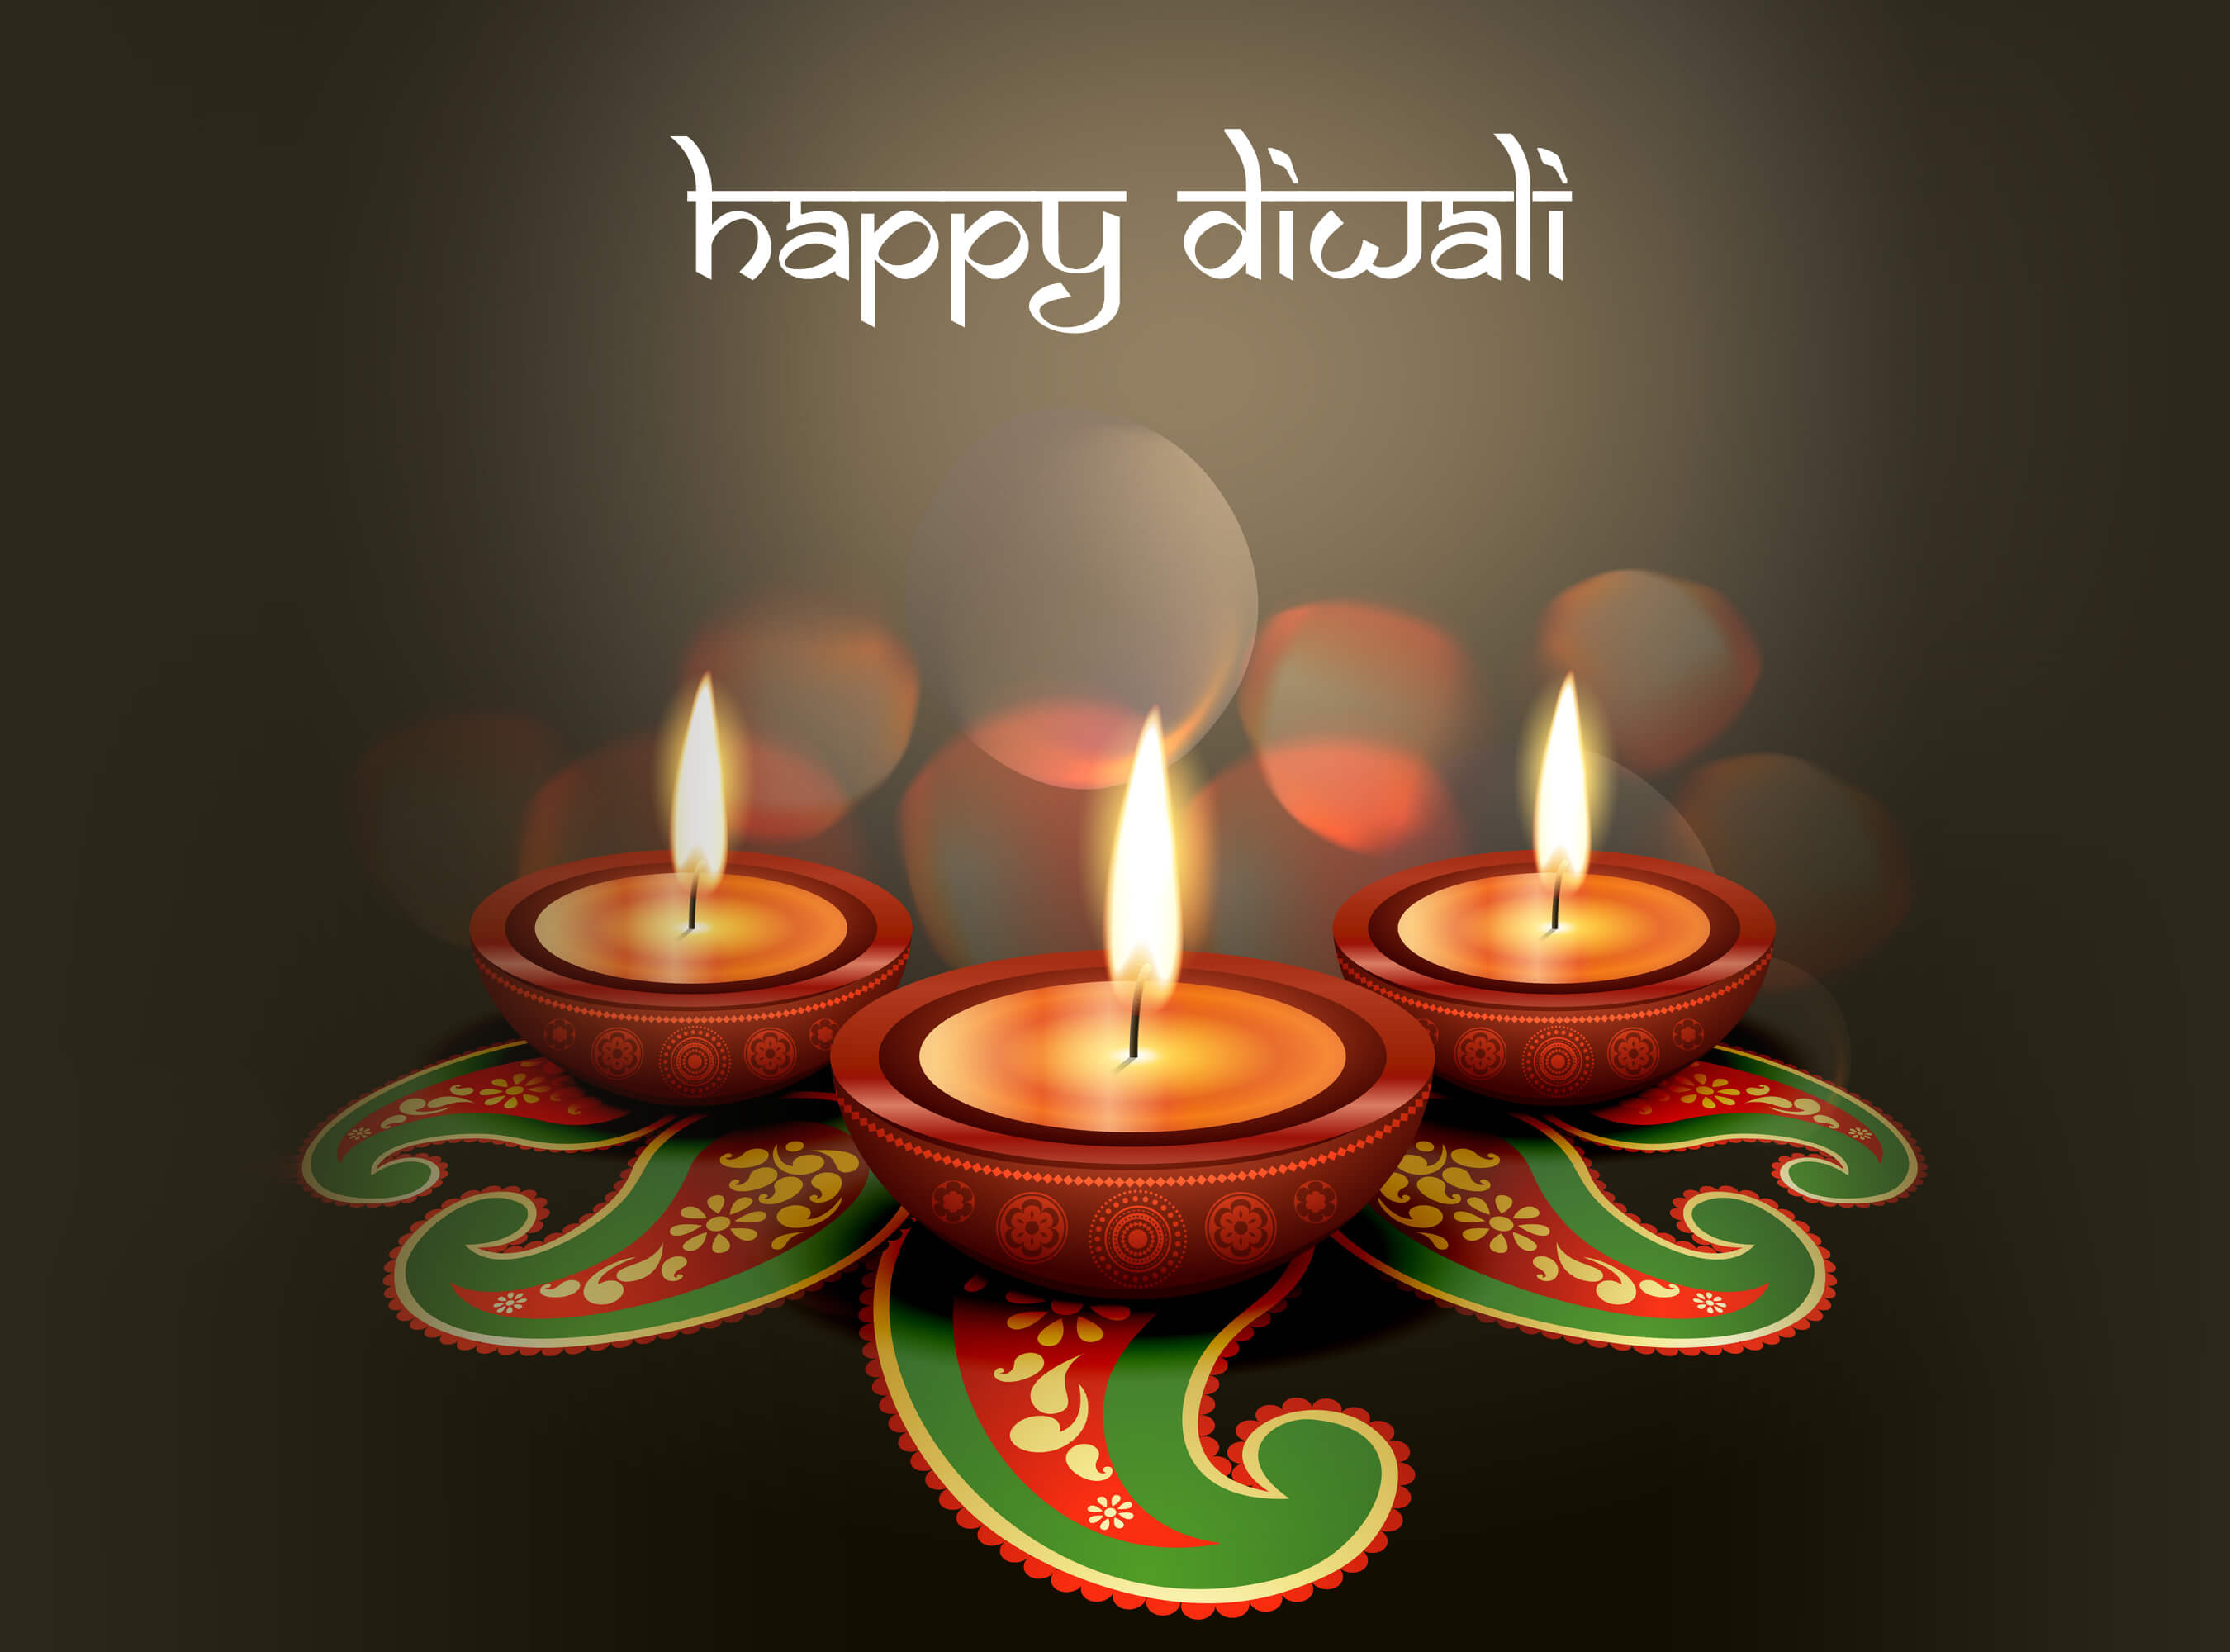 happy diwali greetings wishes lamp hd desktop wallpaper